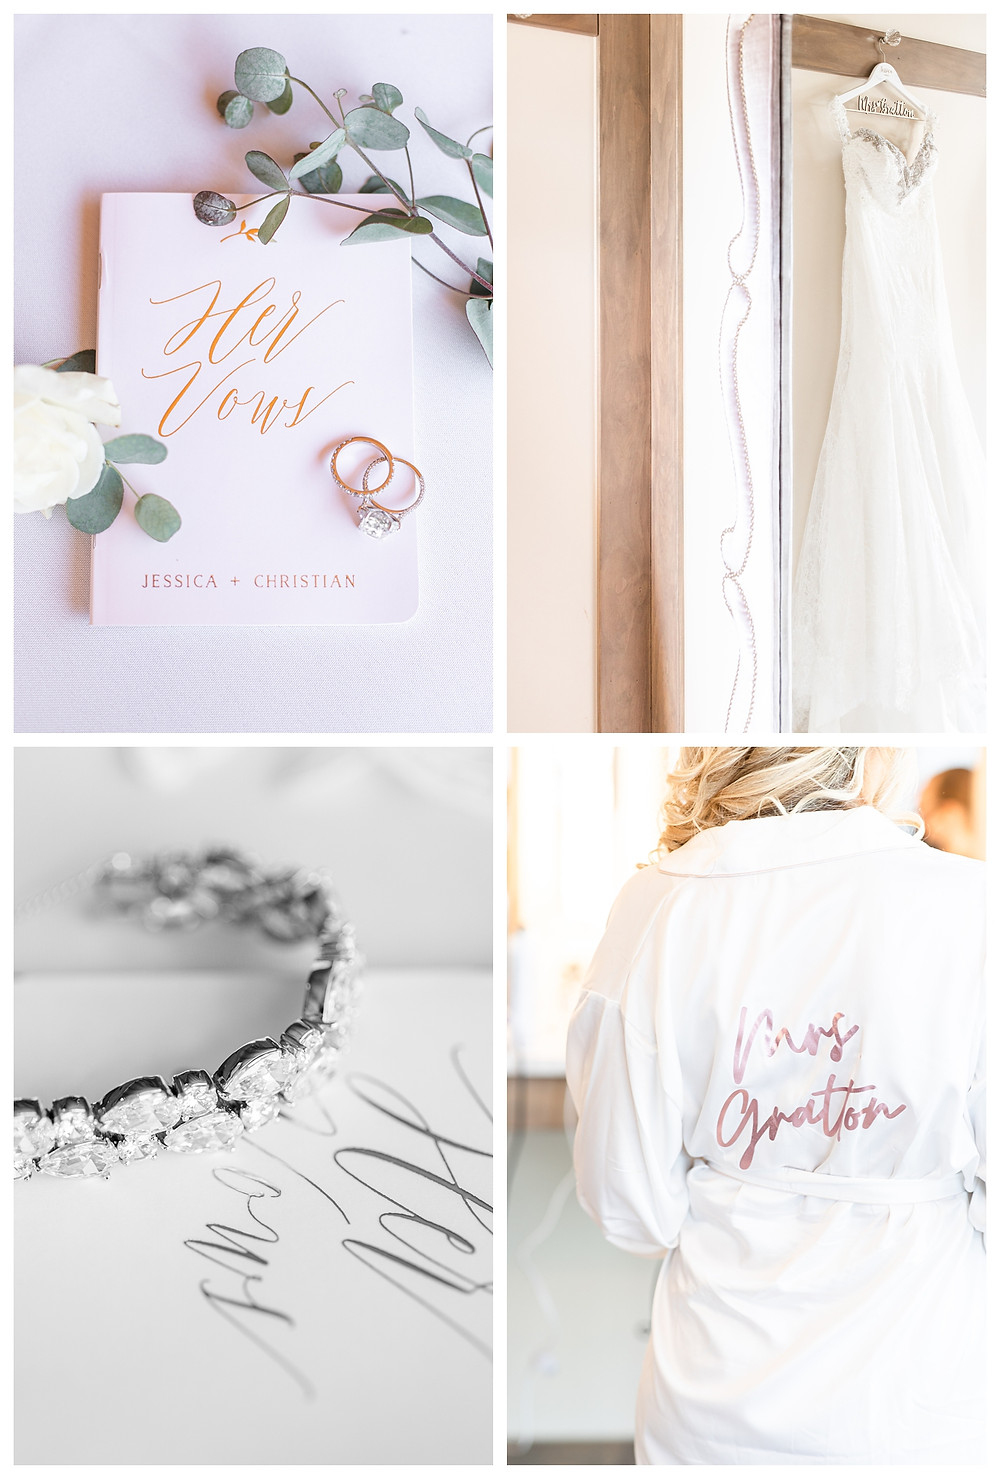 Josh and Andrea wedding photography husband and wife photographer team michigan south haven pictures Black River Barn luxury elegant wedding venue spring bride and groom vow dress bracelet robe